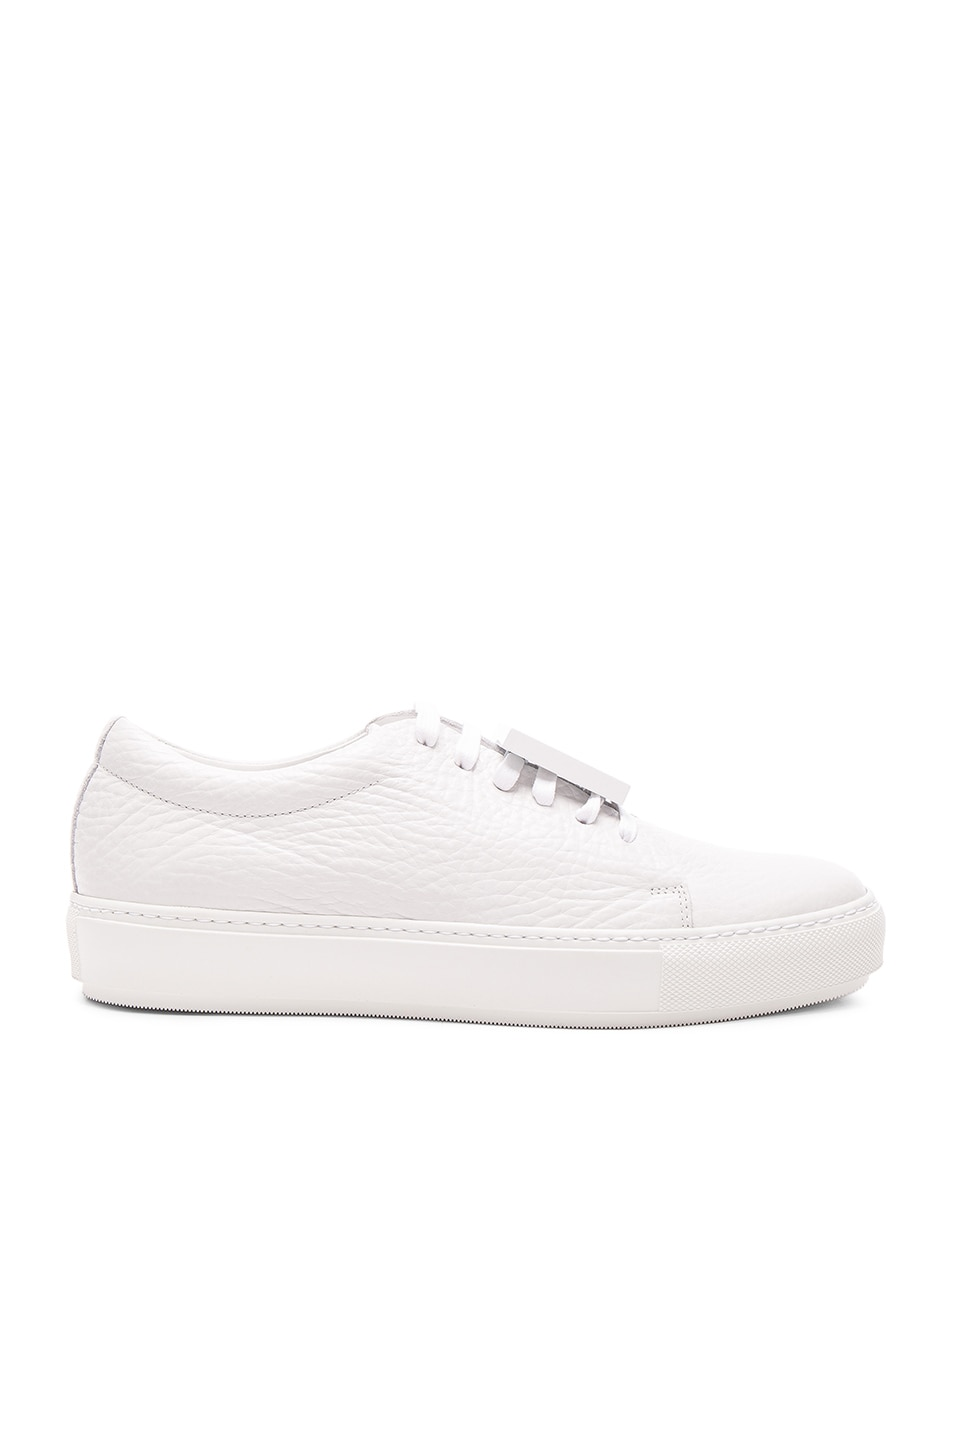 Image 1 of Acne Studios Leather Adriana Sneakers in White